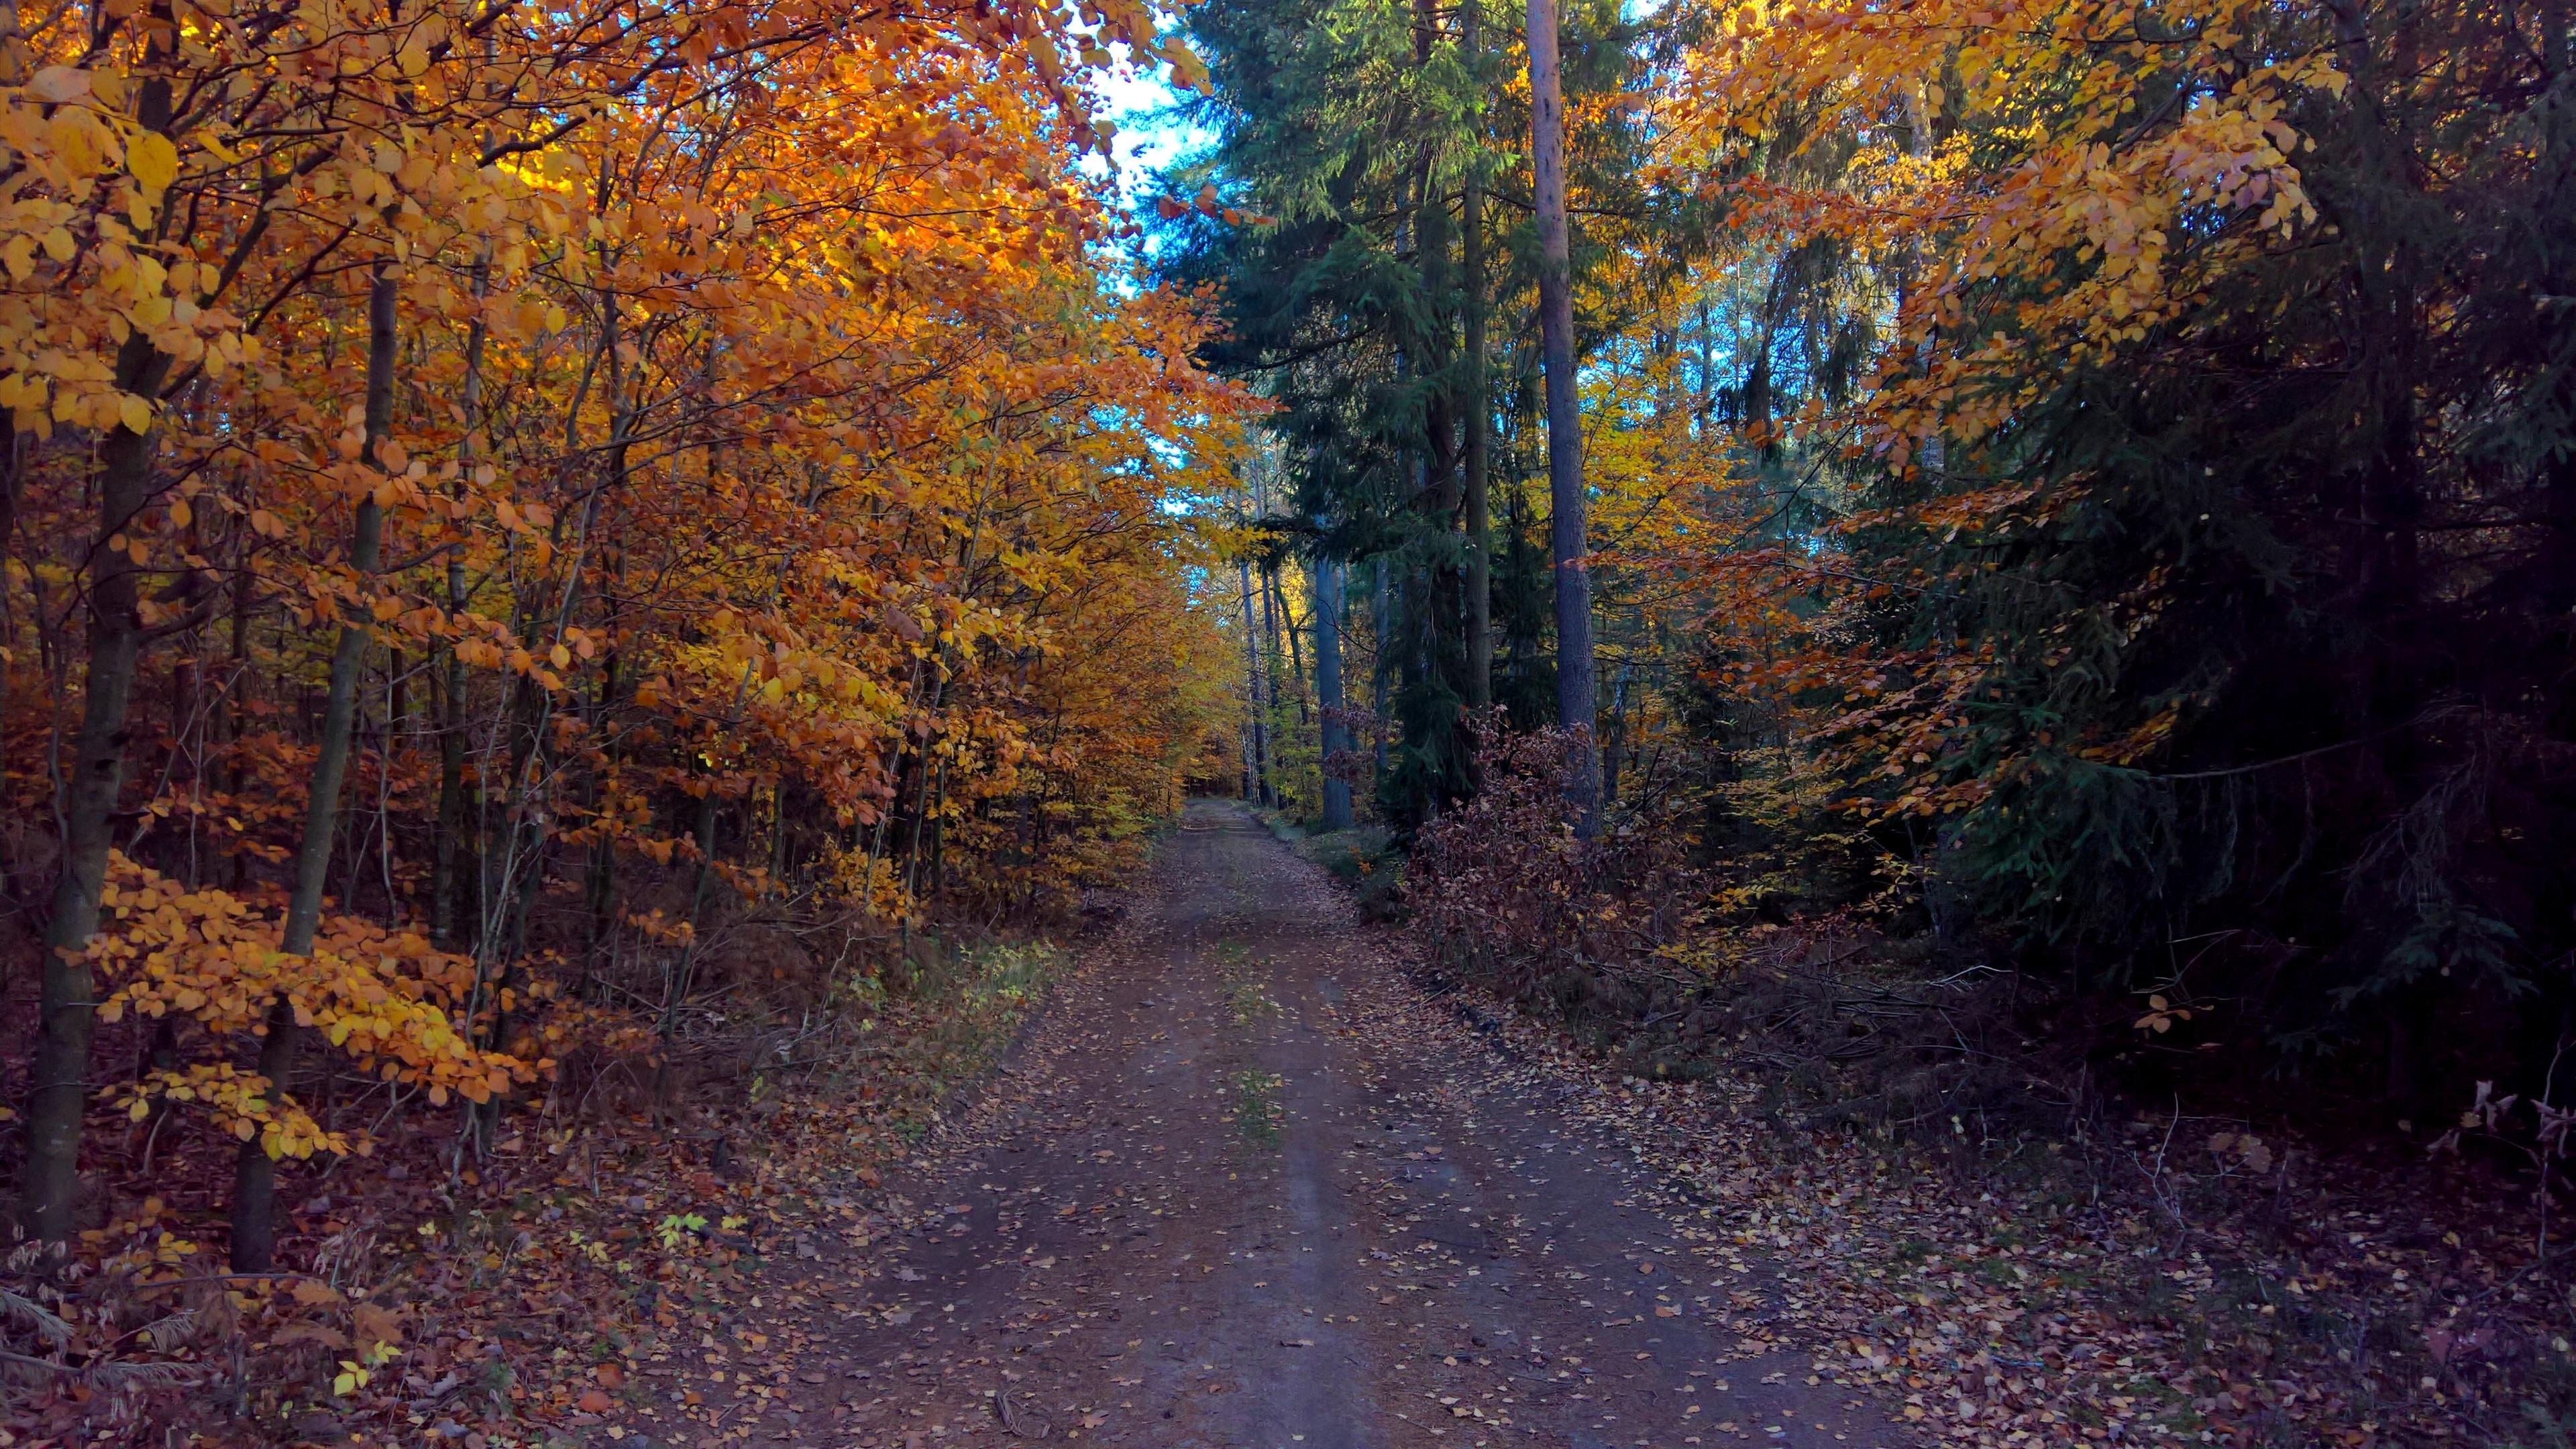 Dirt road in the fall forest wallpaper